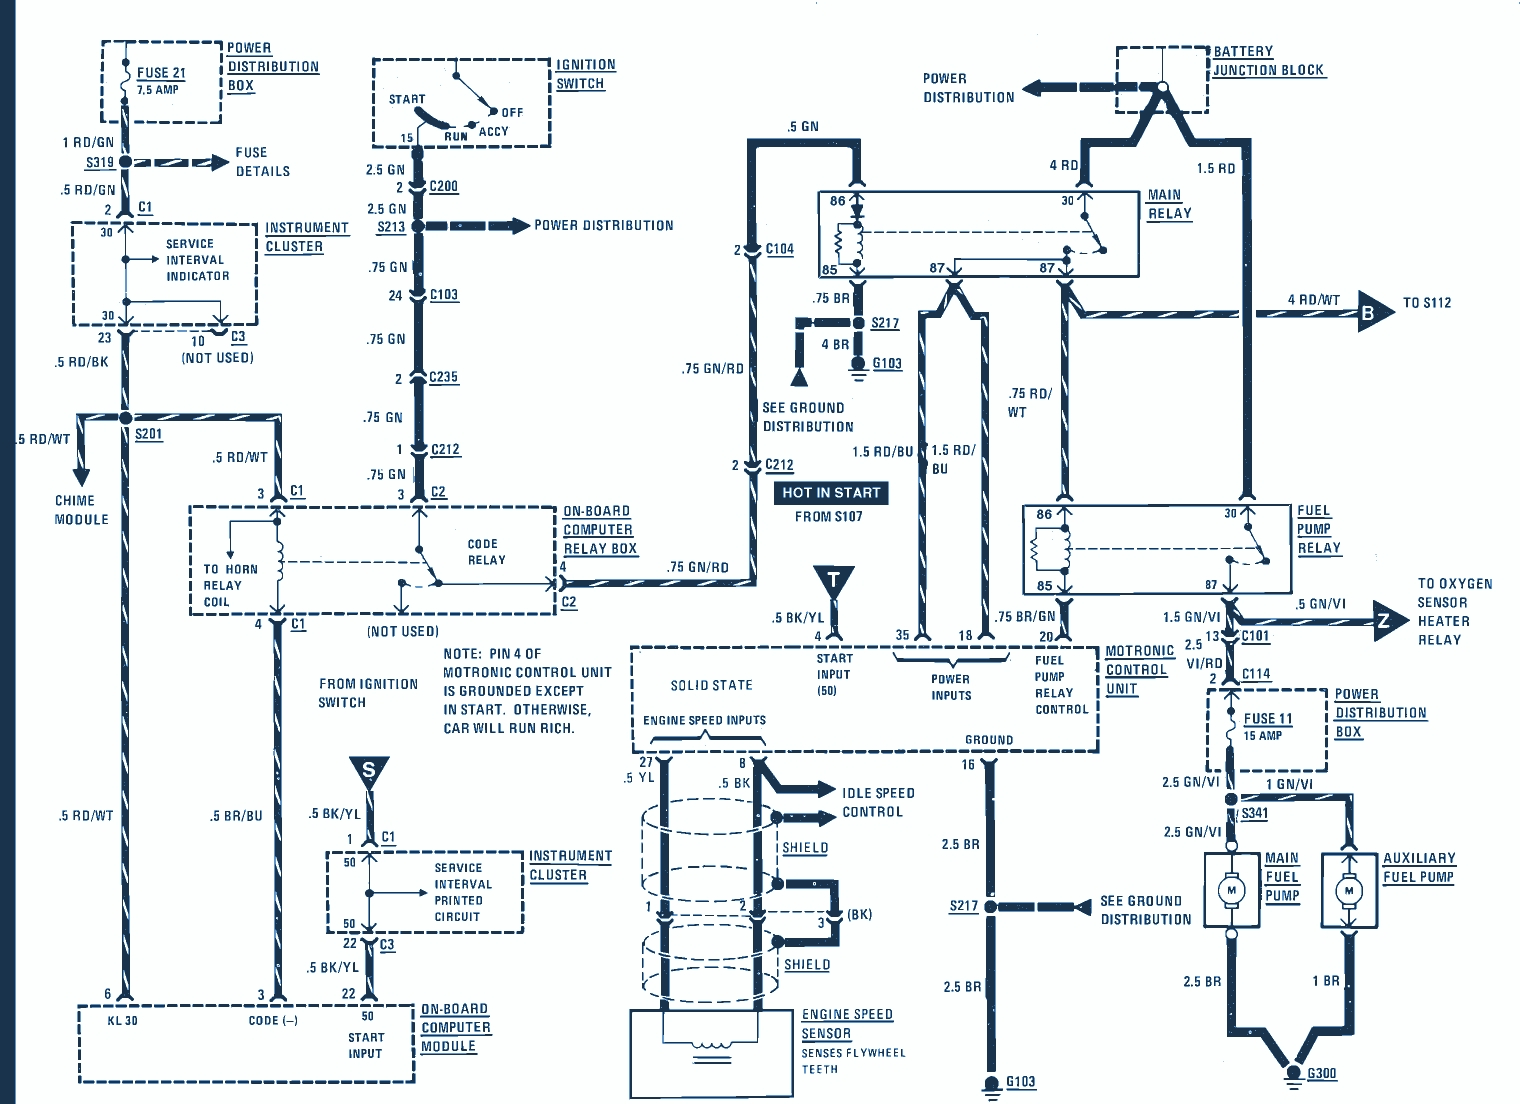 z4 fuse diagram wiring library rh 100 bomb01 co